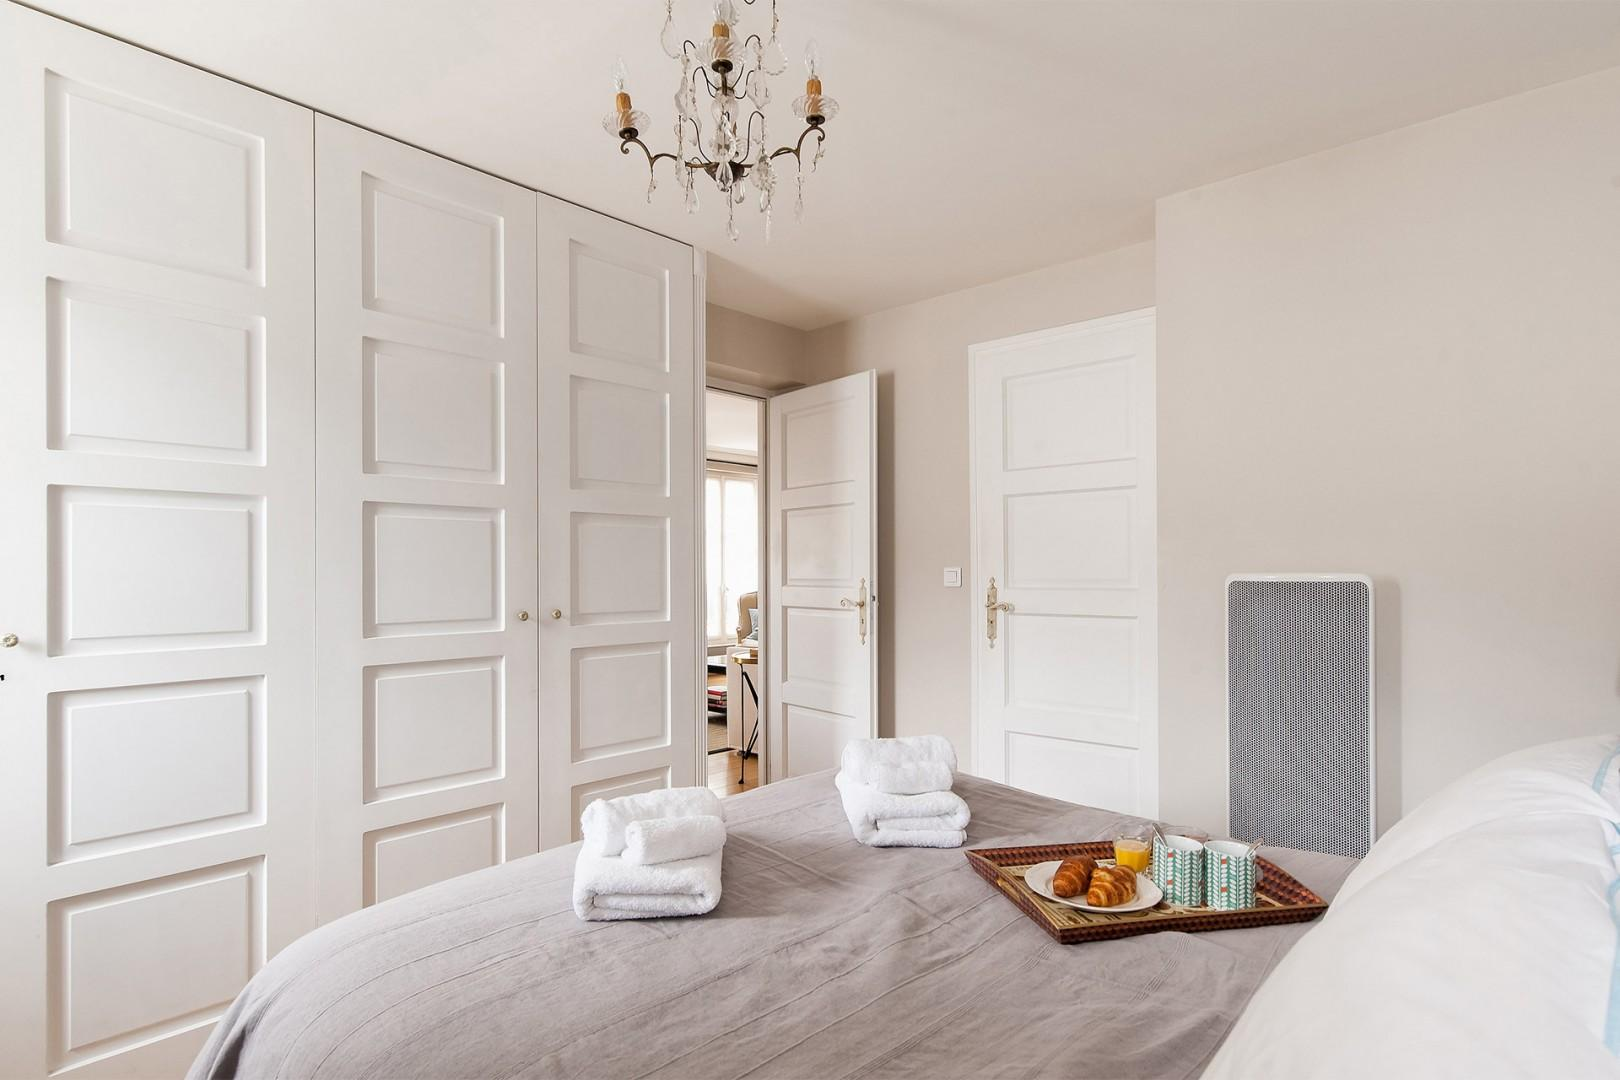 Take advantage of the large built in closets for extra storage.